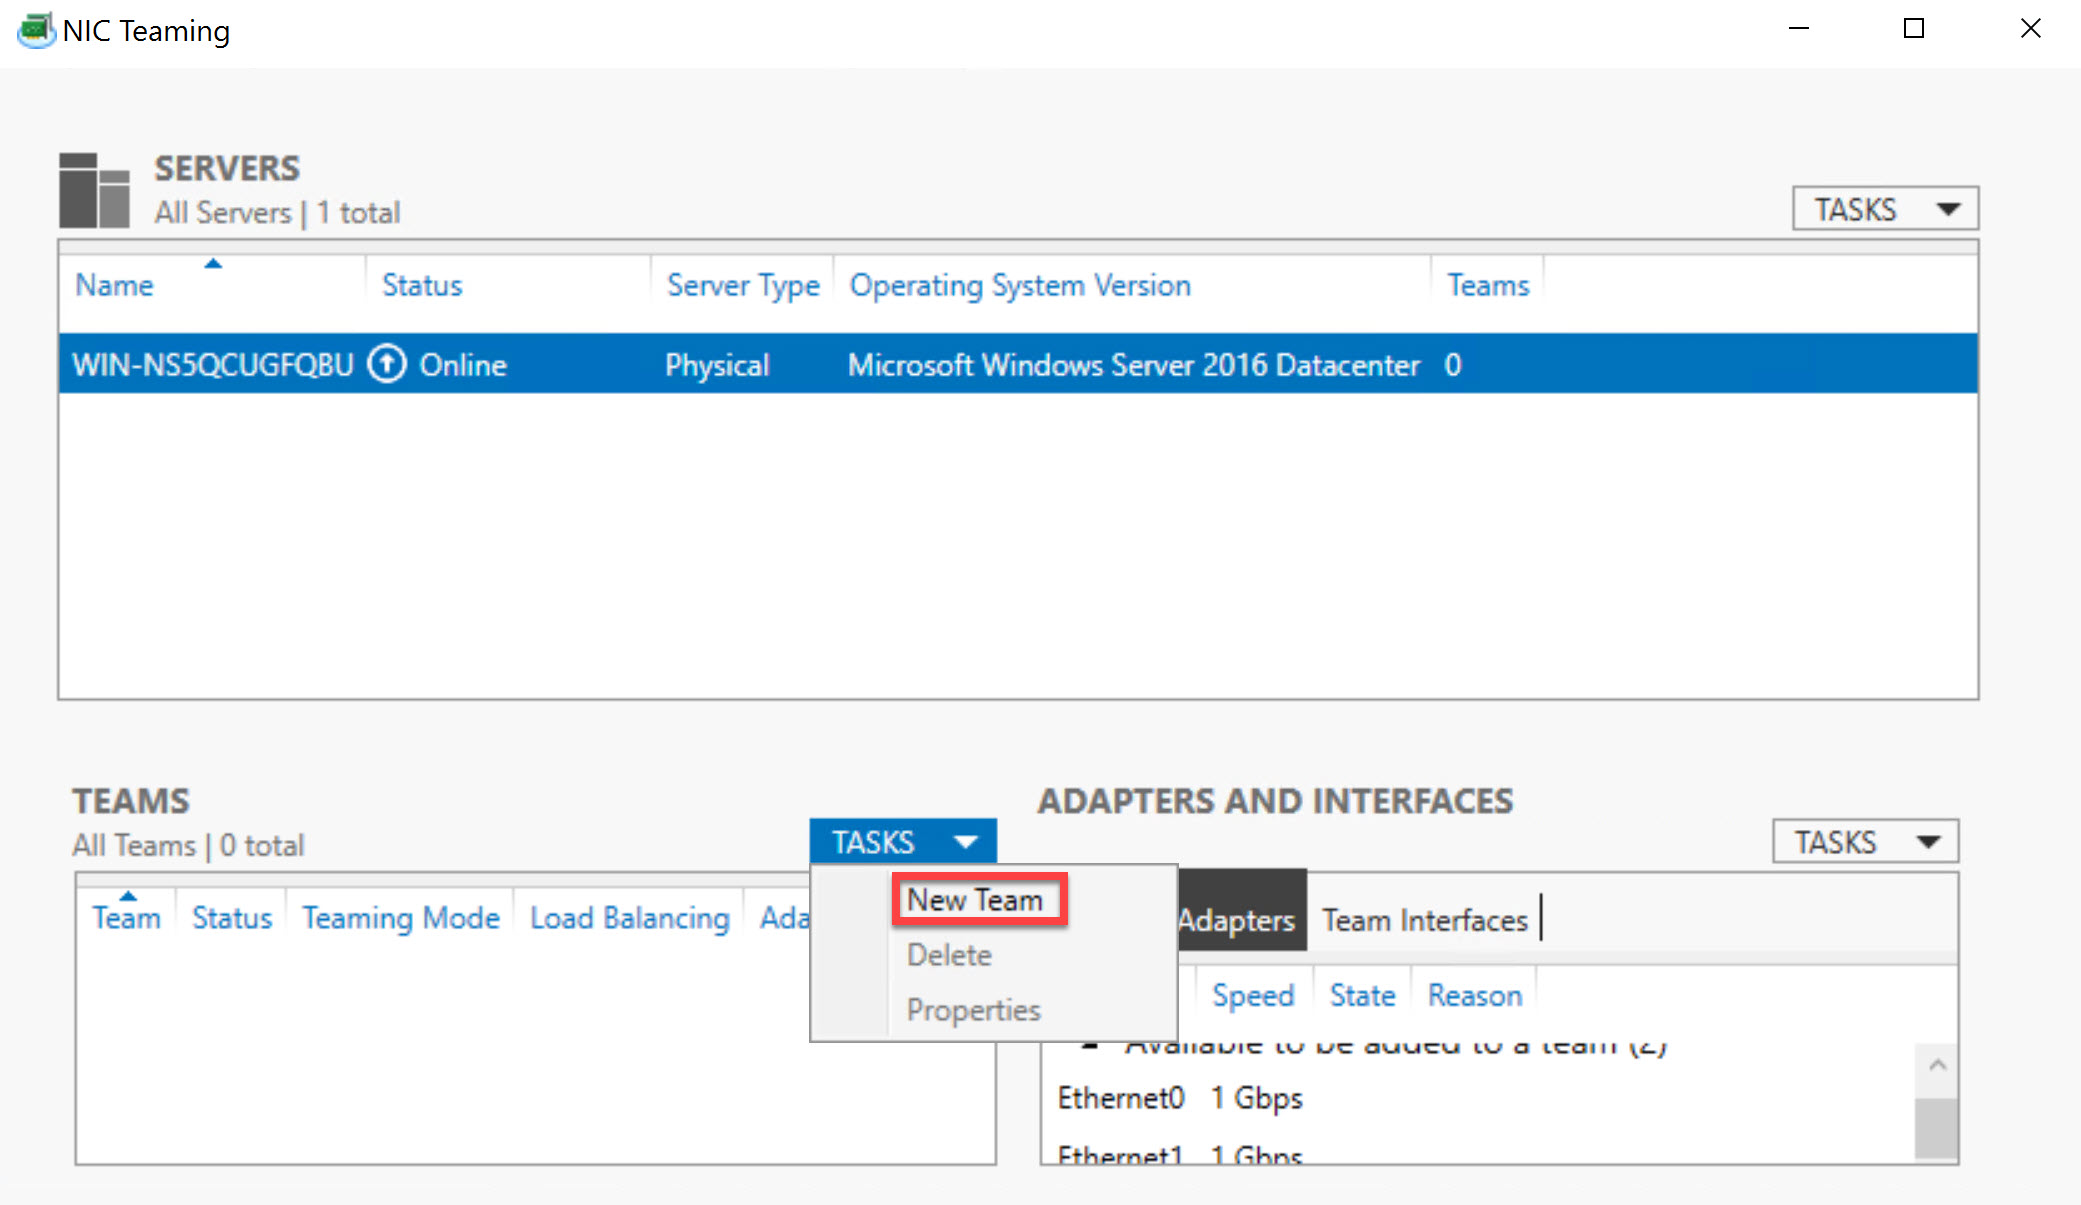 Windows Server 2016: NIC Teaming with Cisco Switch - TechNet